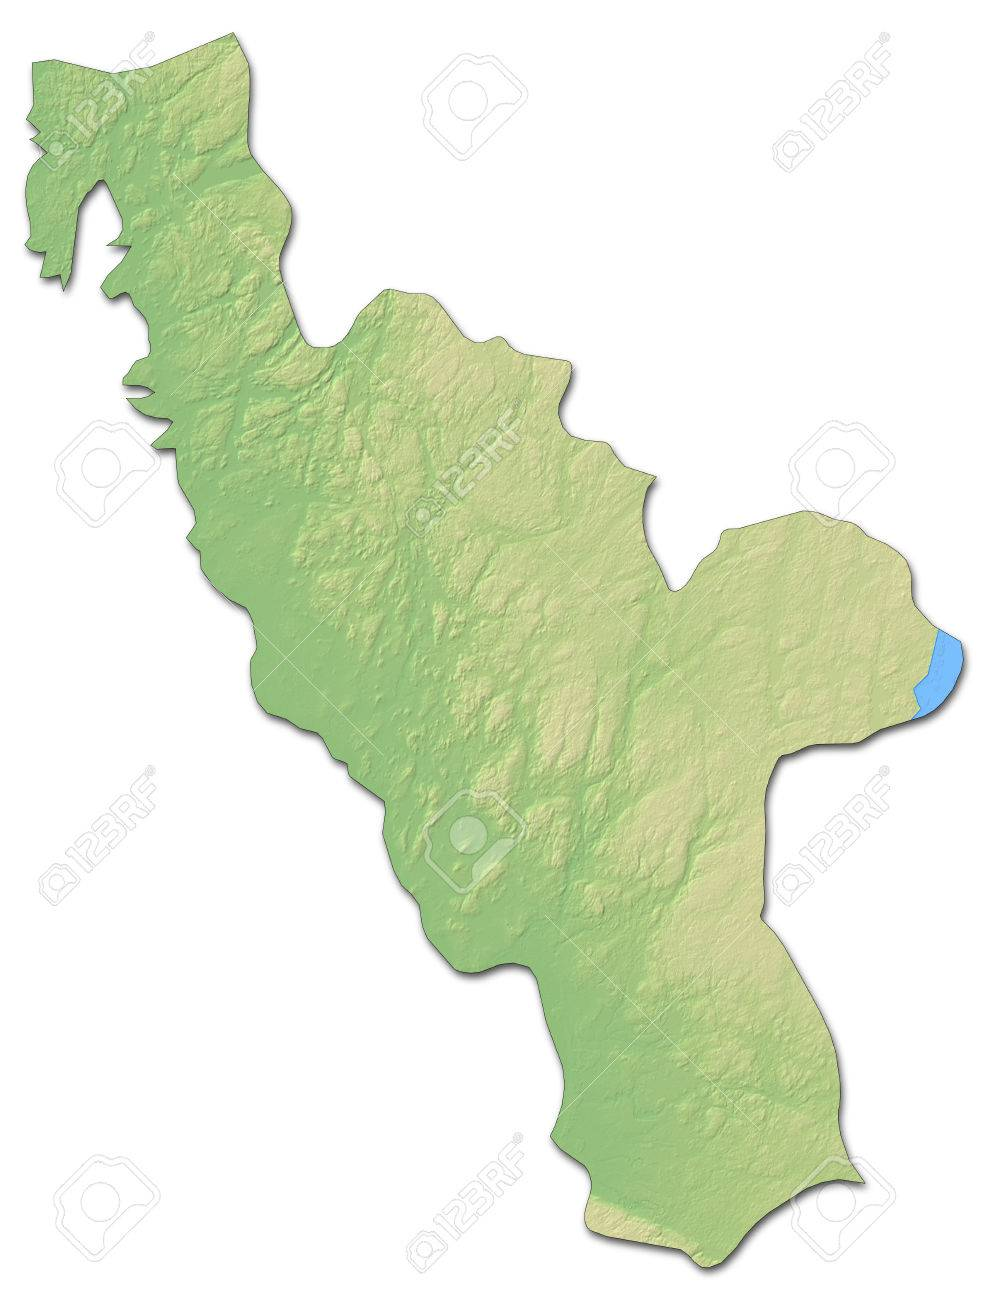 Relief Map Of Halland County A Province Of Sweden With Shaded - Sweden relief map